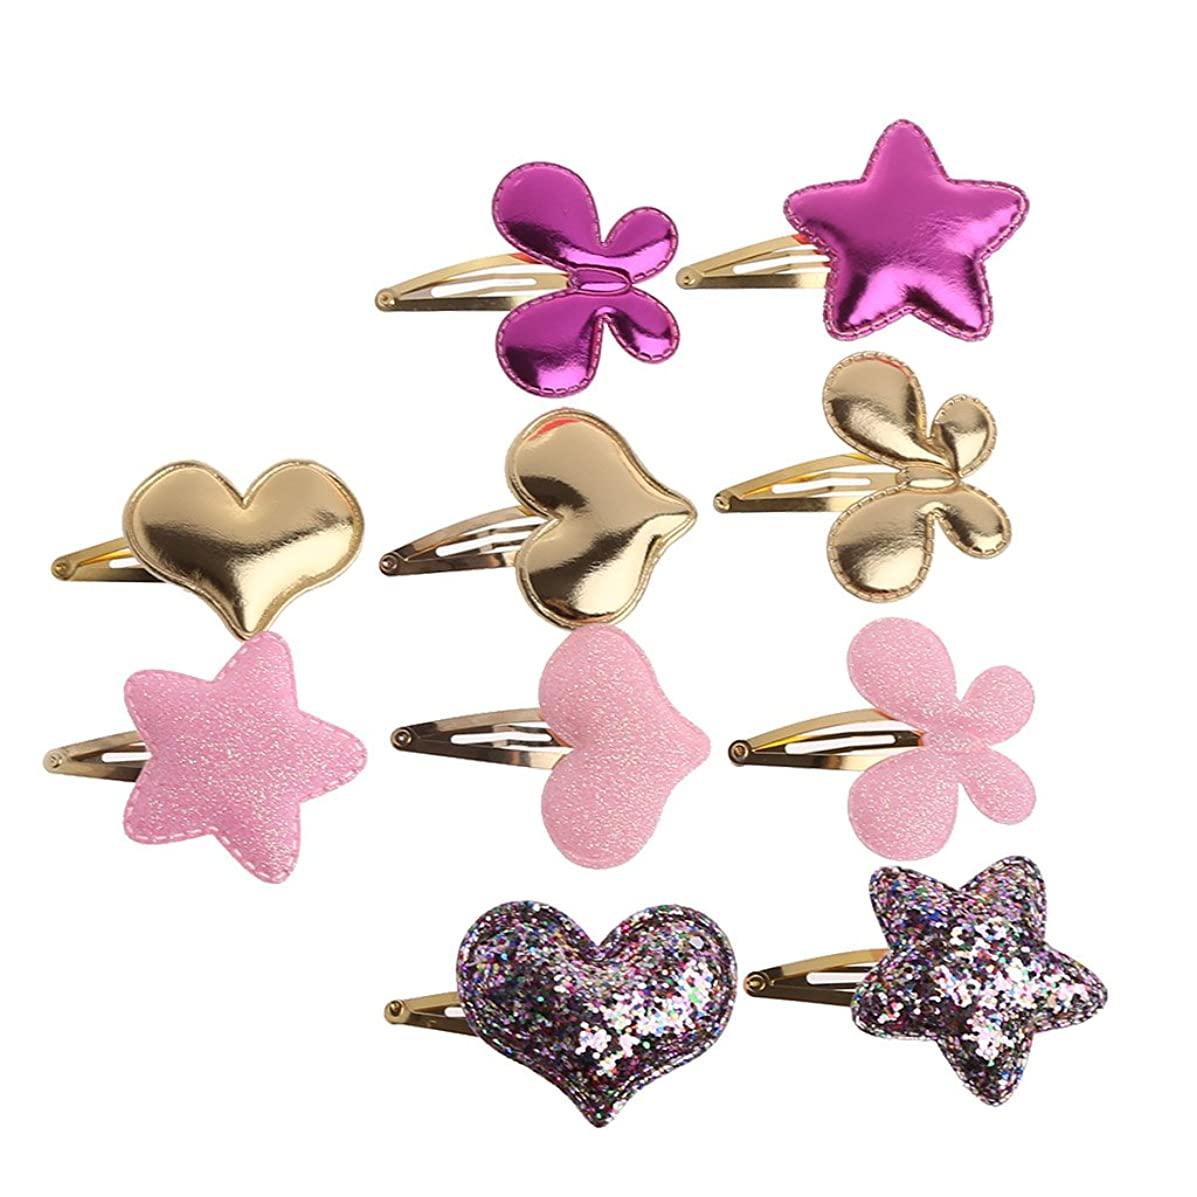 Simdoc 10 Pcs/set Baby Girls Hair Clip Butterfly Hearts Stars BB Hair Clip Synthetic Leather Hairpin Snap Barrette Hair Accessories For Girls Babies Toddlers Teens Gifts,Random Color